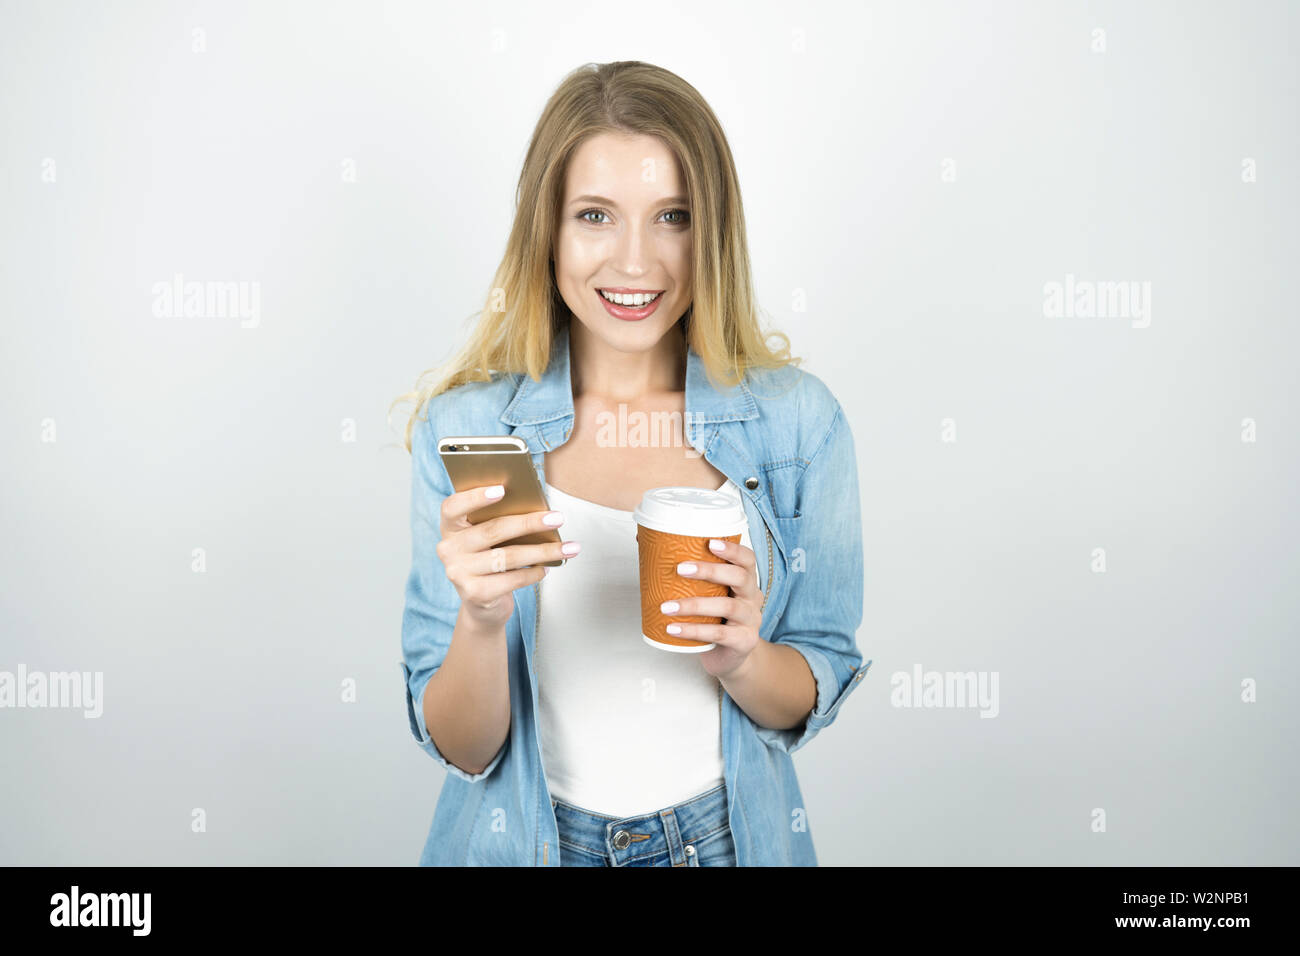 young blond woman smiling holding smartphone in one hand and cup of coffee in another isolated white background - Stock Image